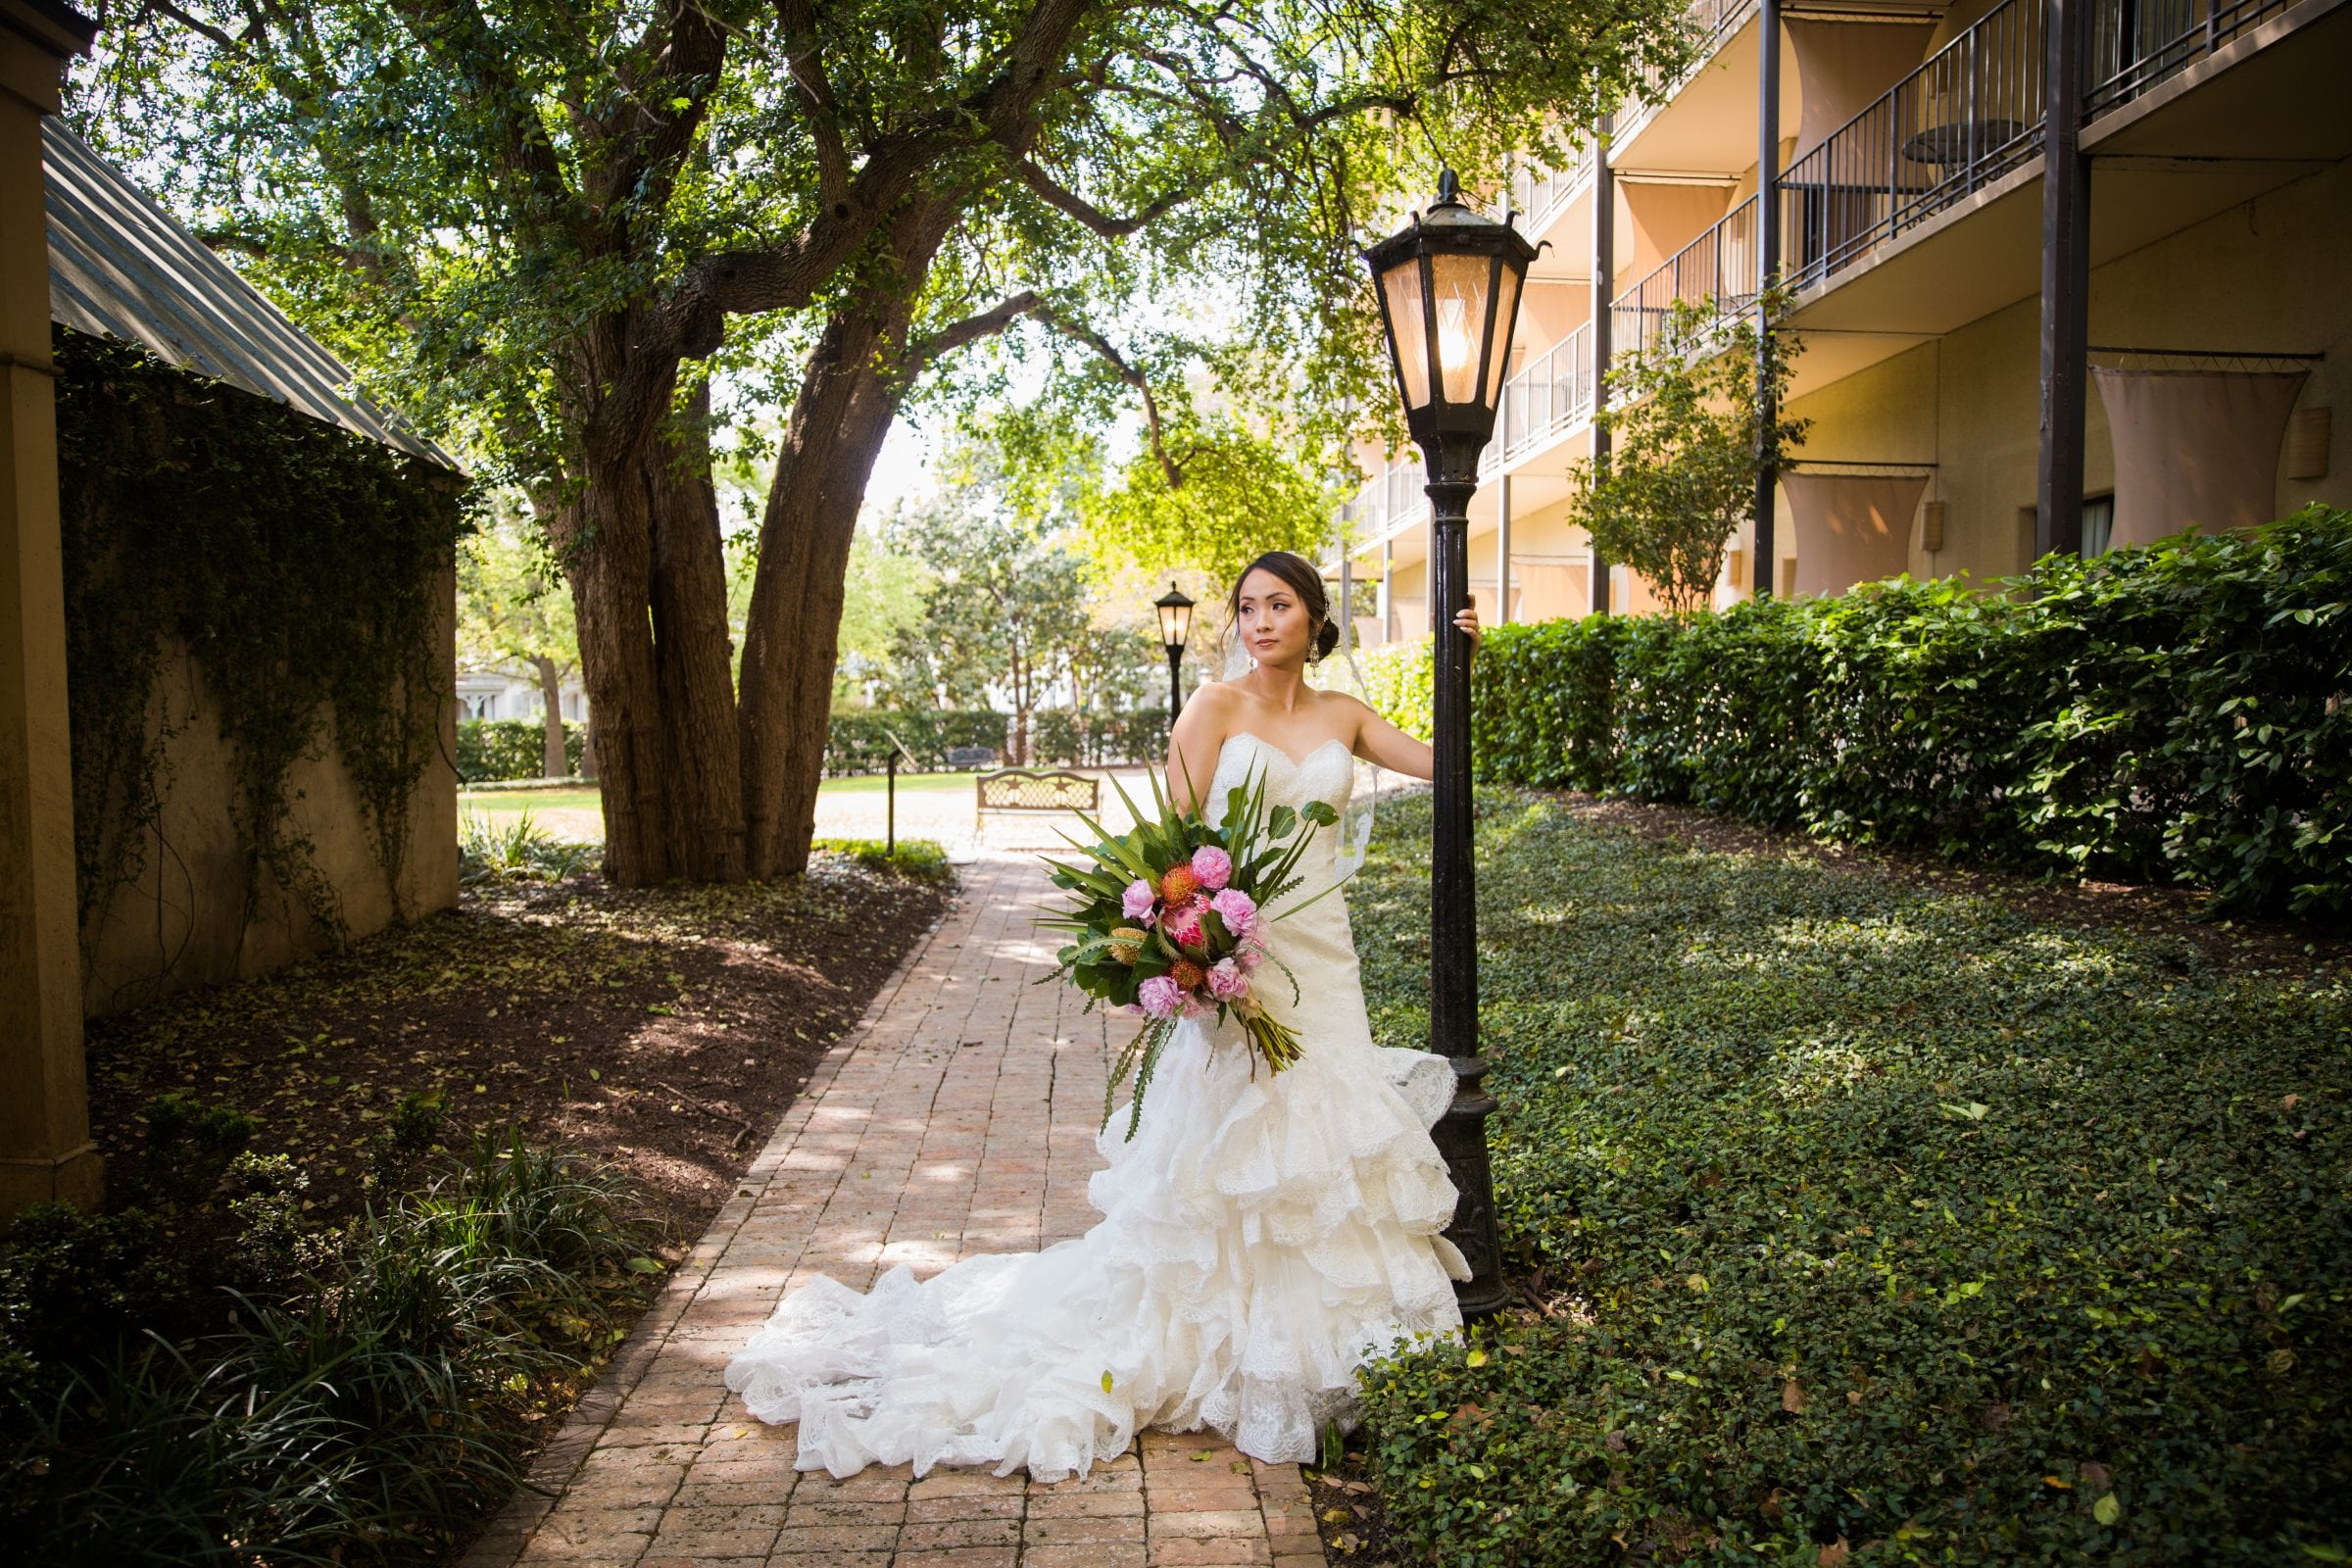 Marriott Plaza Styled Shoot bride on path